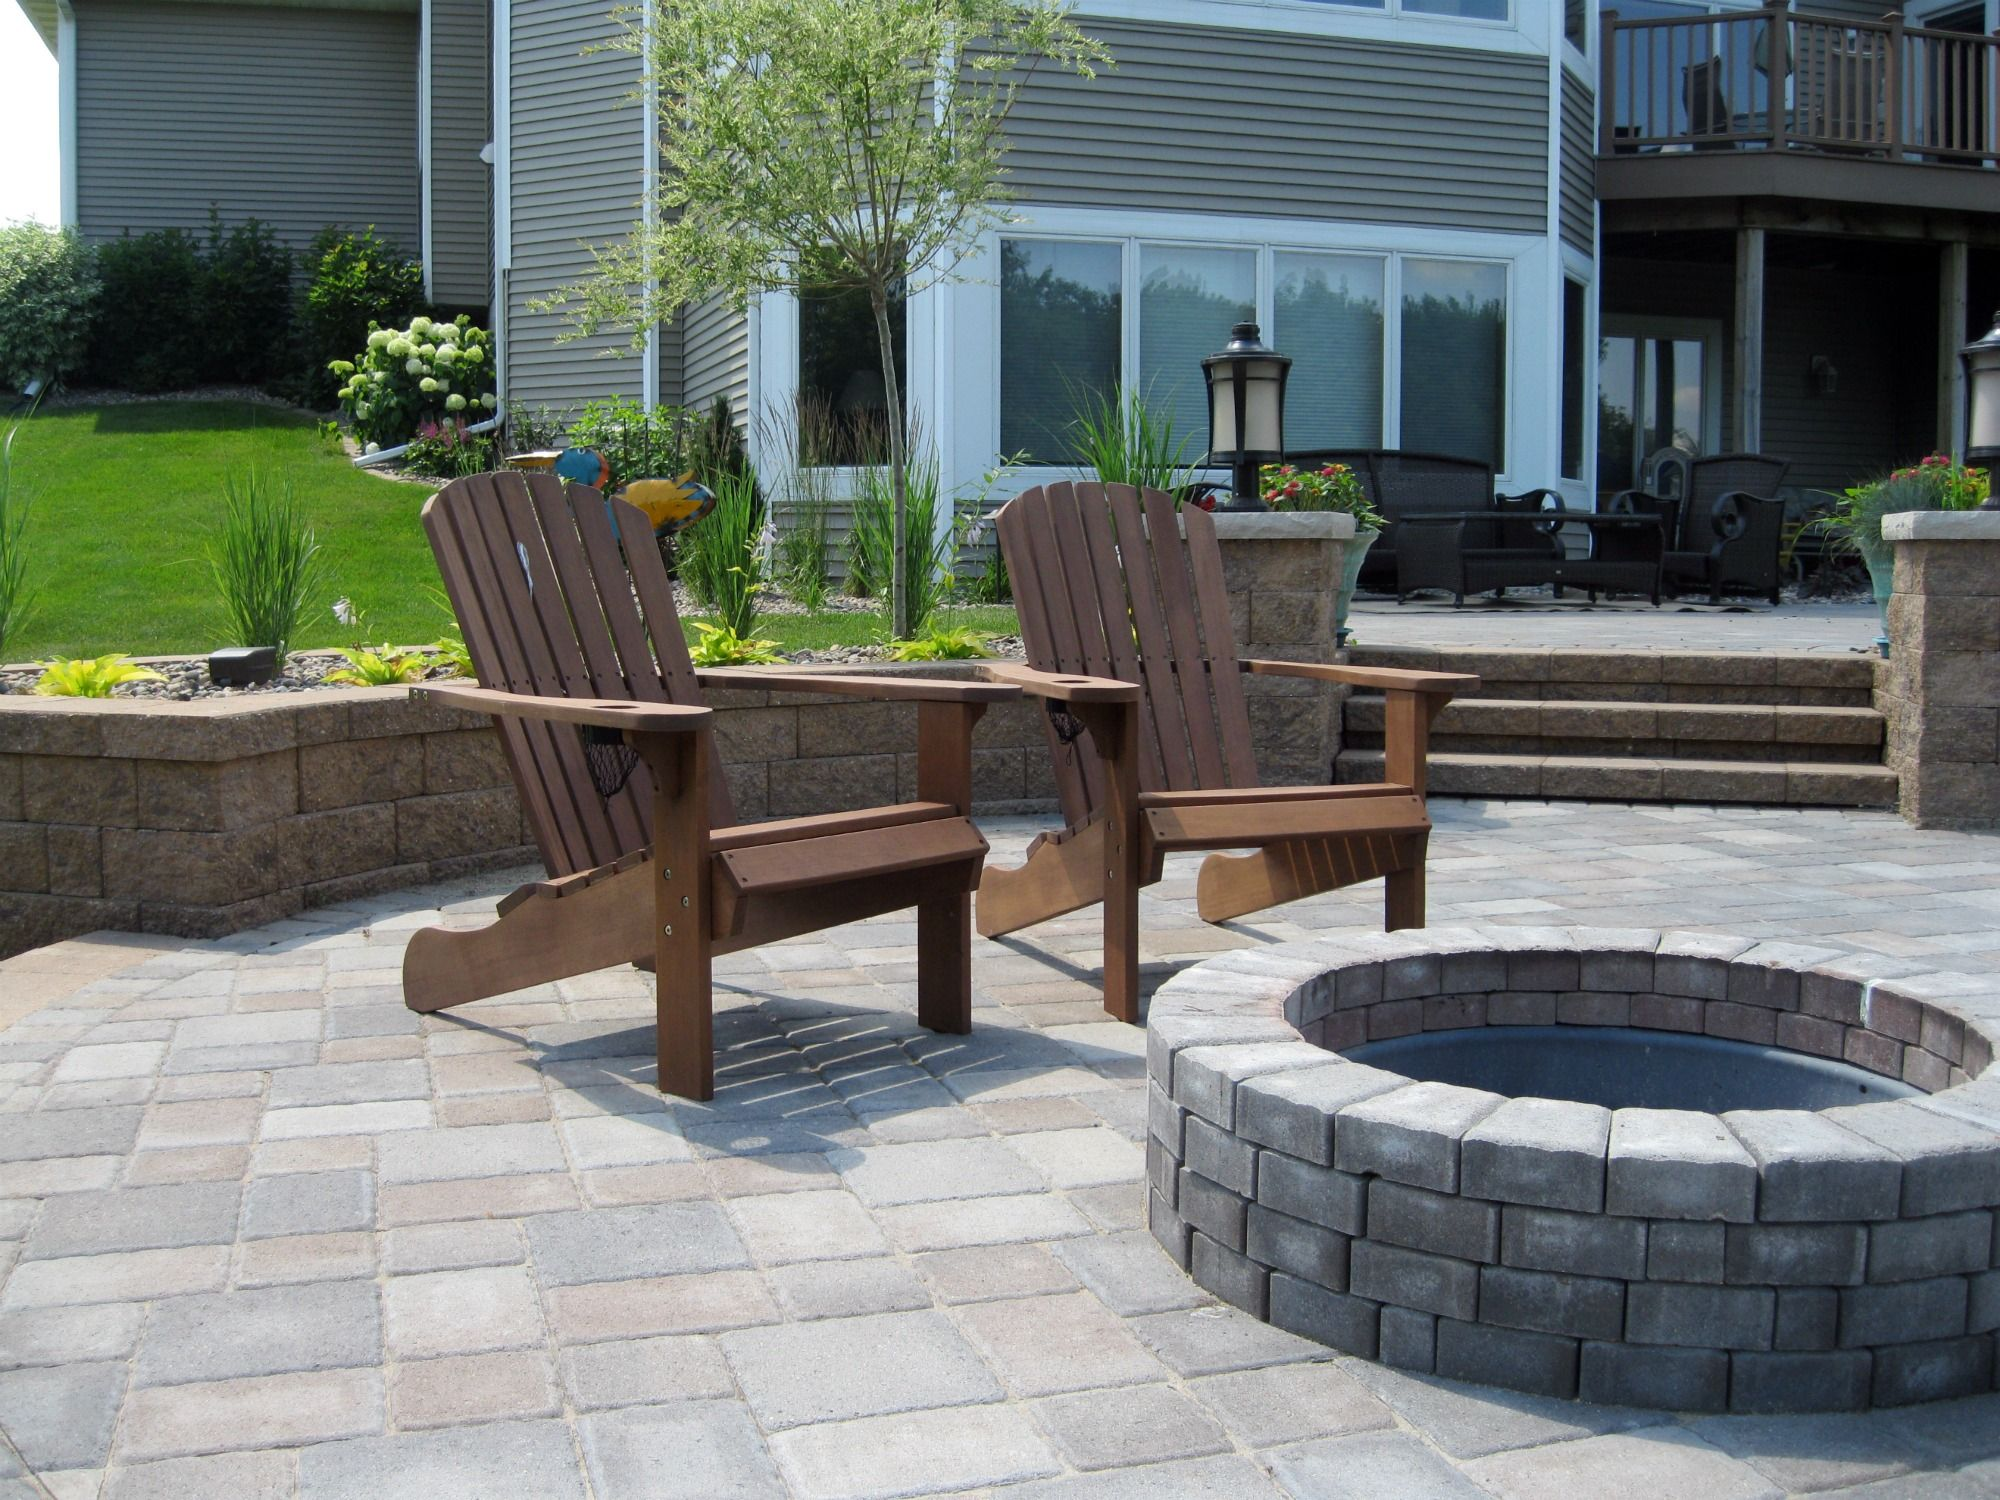 Outdoor Living Versa Lok Retaining Wall Fire Pit Willow Creek Paver Patio Cobblestone